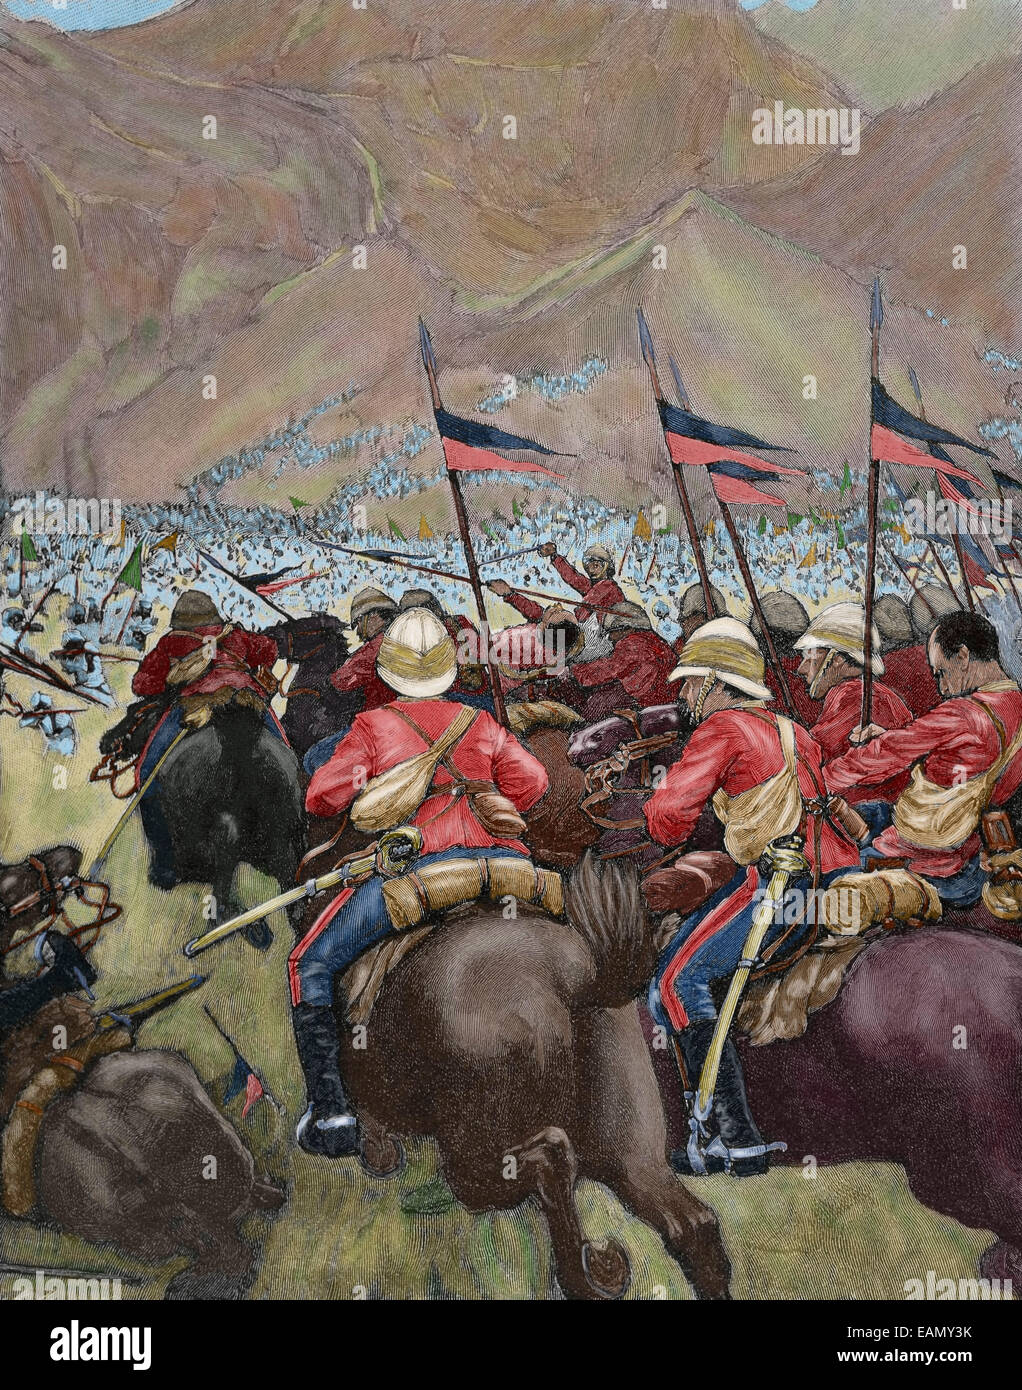 Africa. Colonialism. Charging of the English cavalry. Engraving in The Iberian Illustration, 1898. Colored. - Stock Image